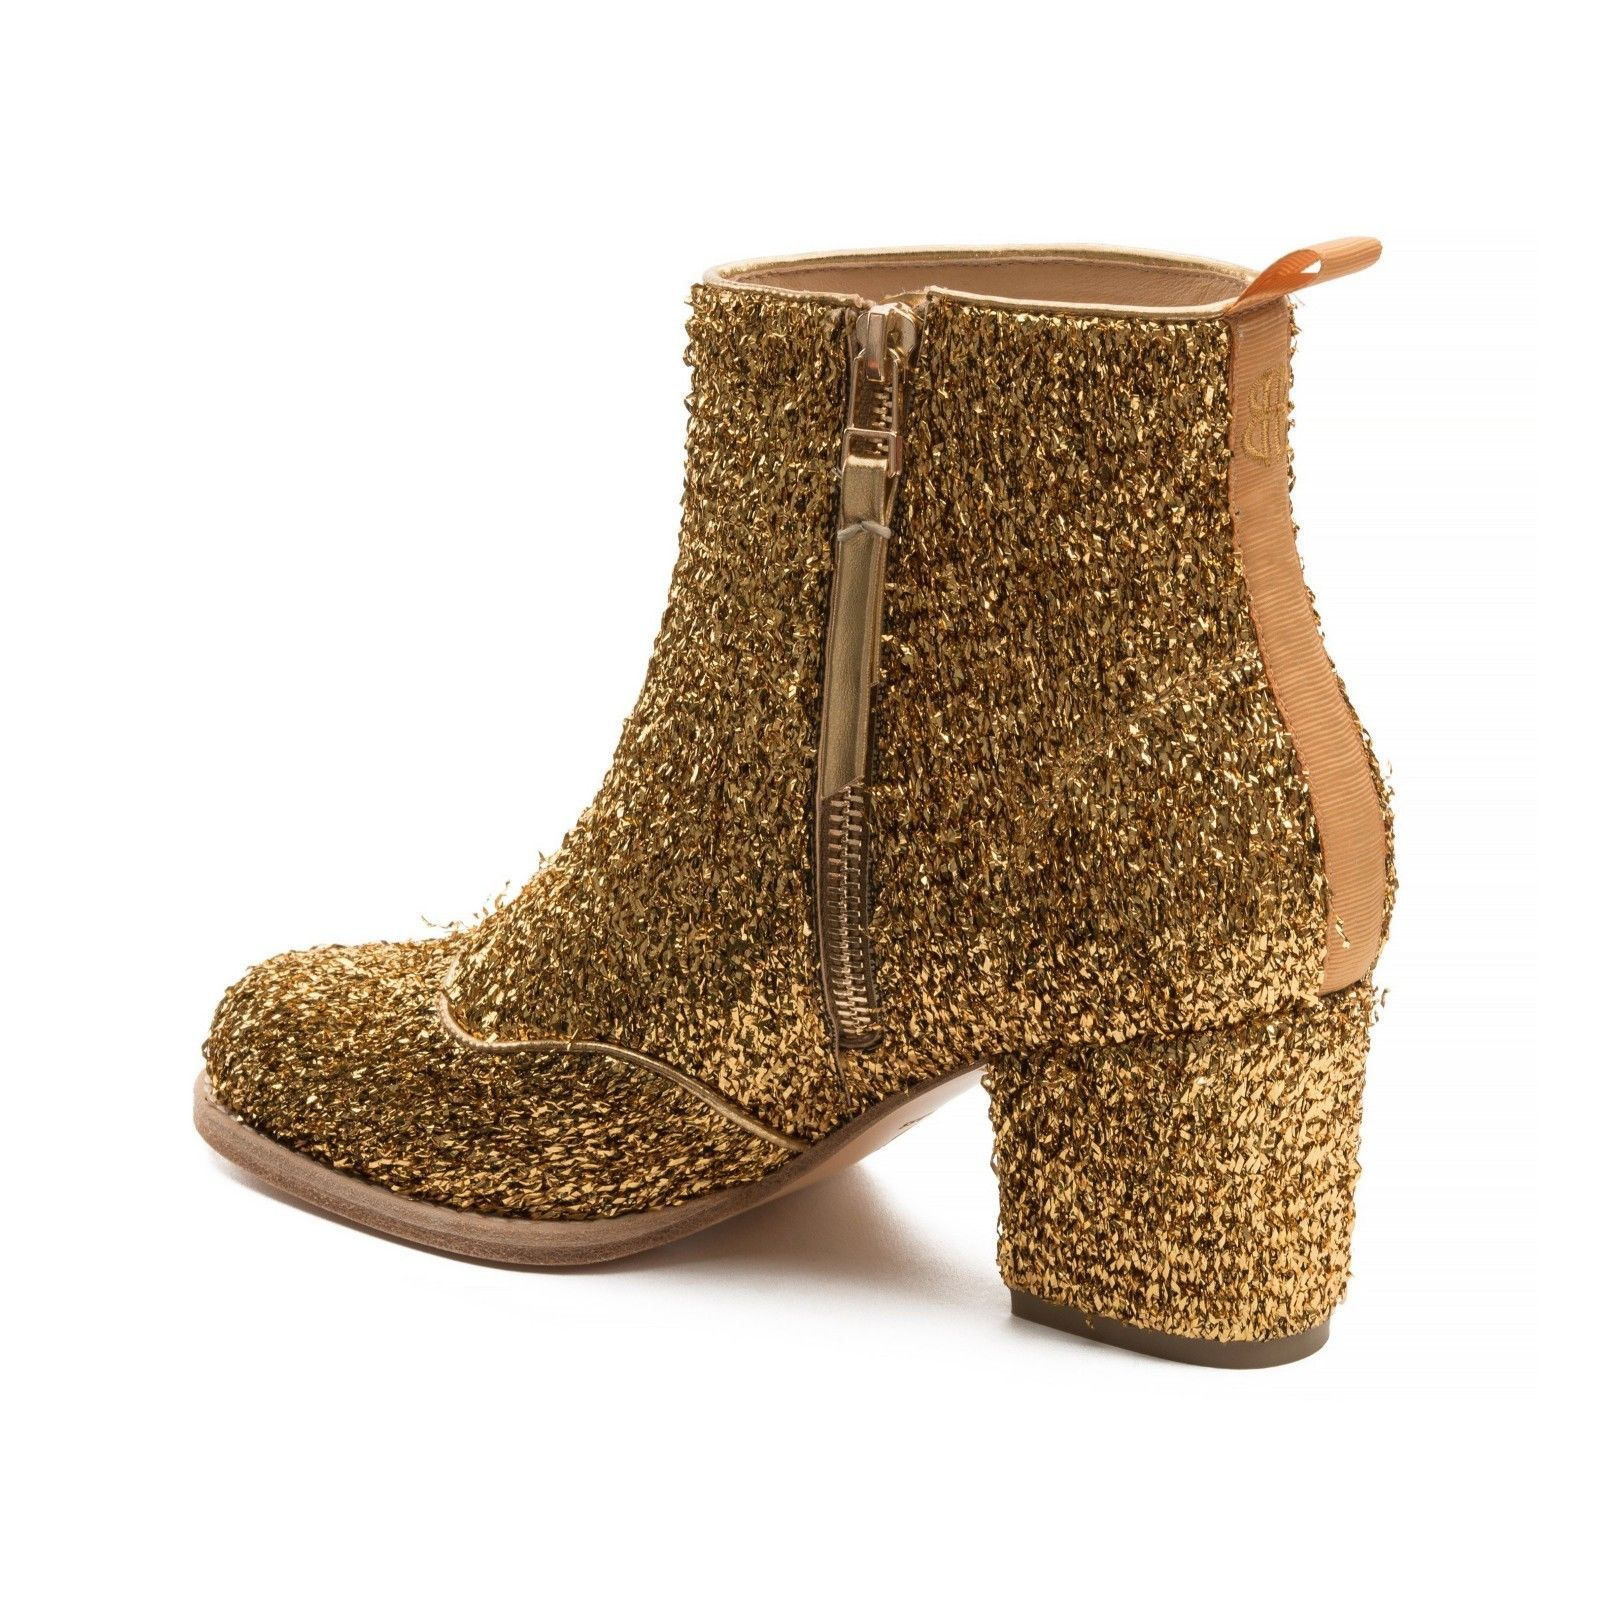 Anthropologie Bill Blass Tinsel Boots $228 Sz 7 - NWT